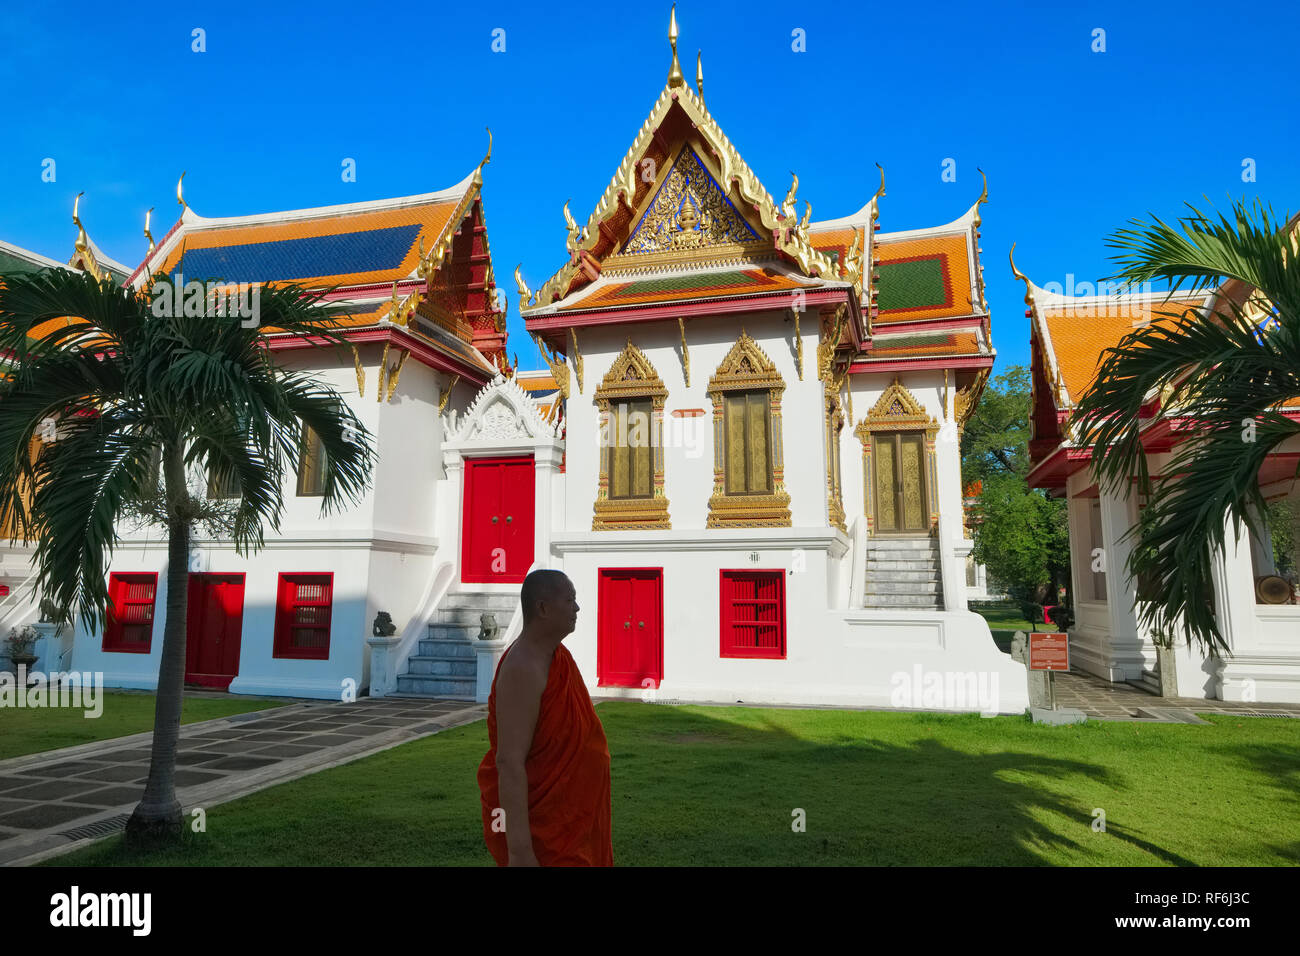 A monk passes prettily restored clerical buildings on the  grounds of Wat Boworniwet, Bangkok, Thailand, also known as Marble Temple - Stock Image